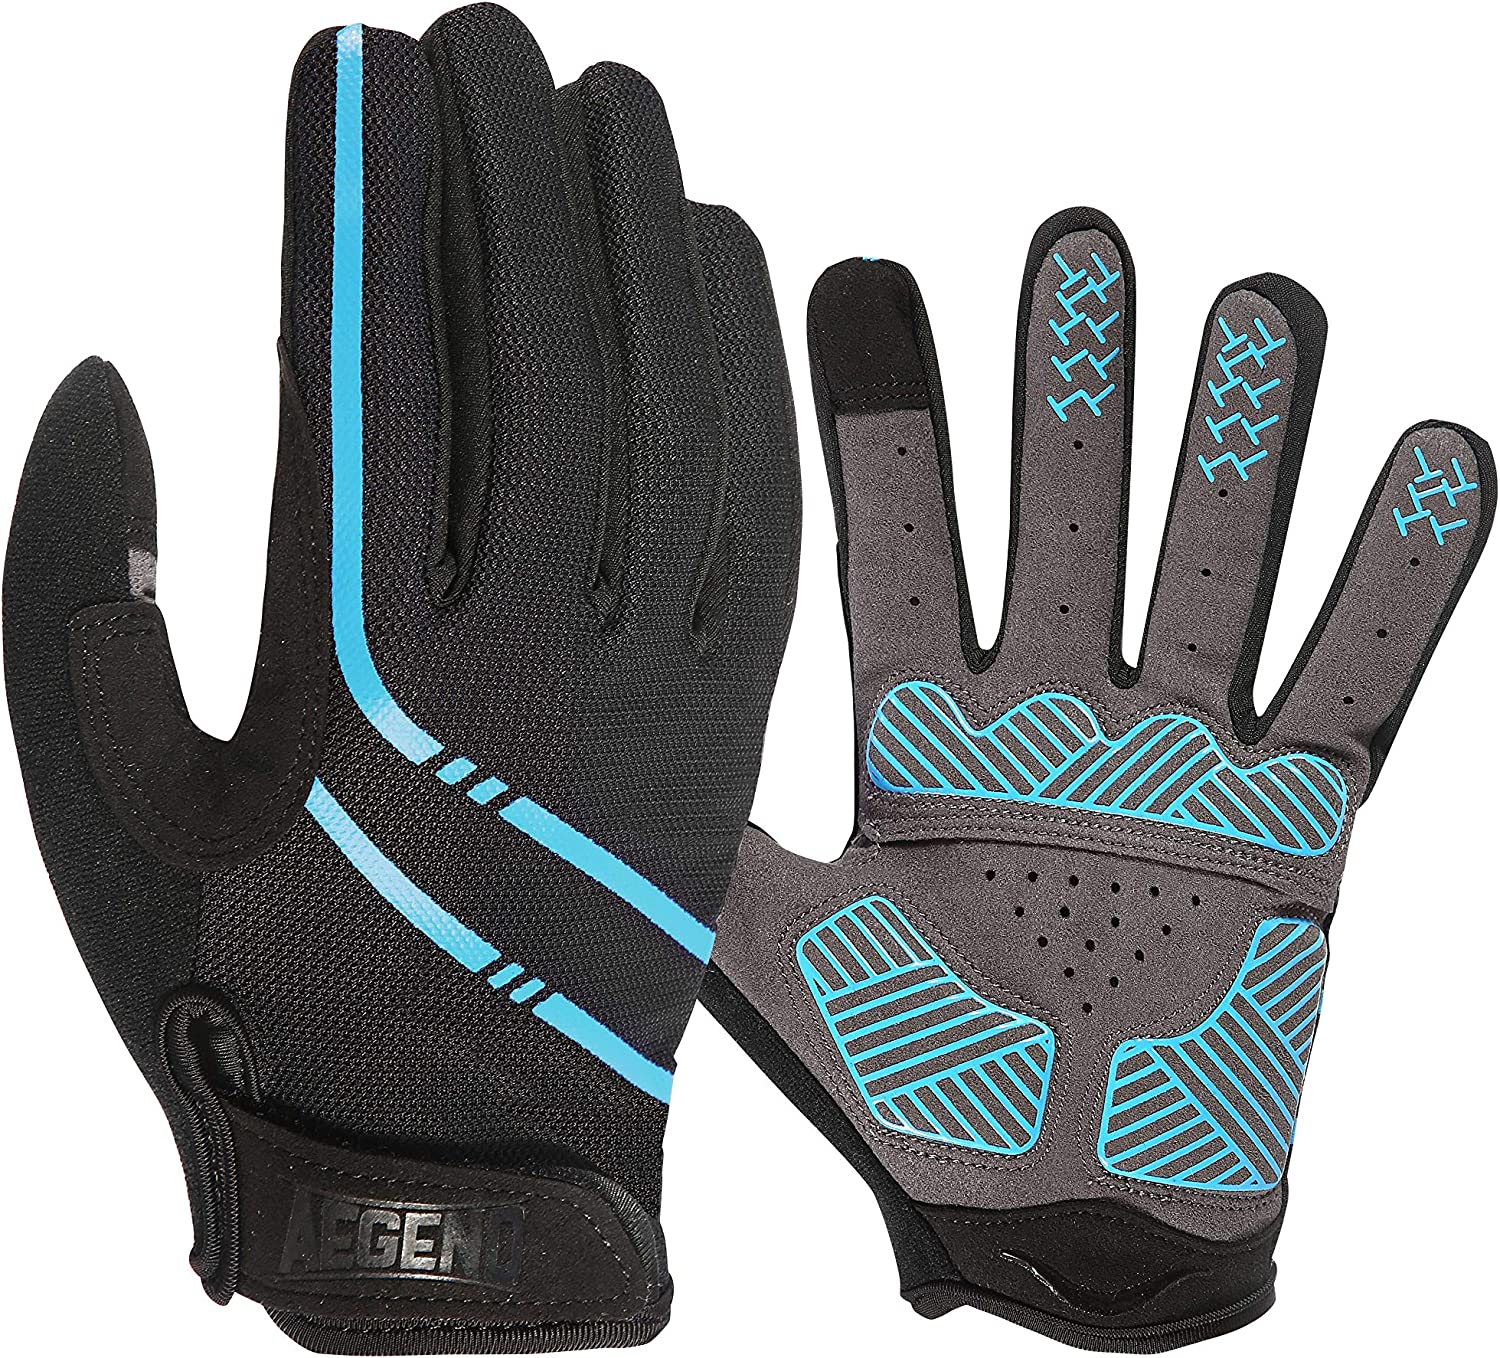 Full Finger Cycling Gloves Bike Bicycle Gel Padded Cycle Touch Screen Gloves MTB